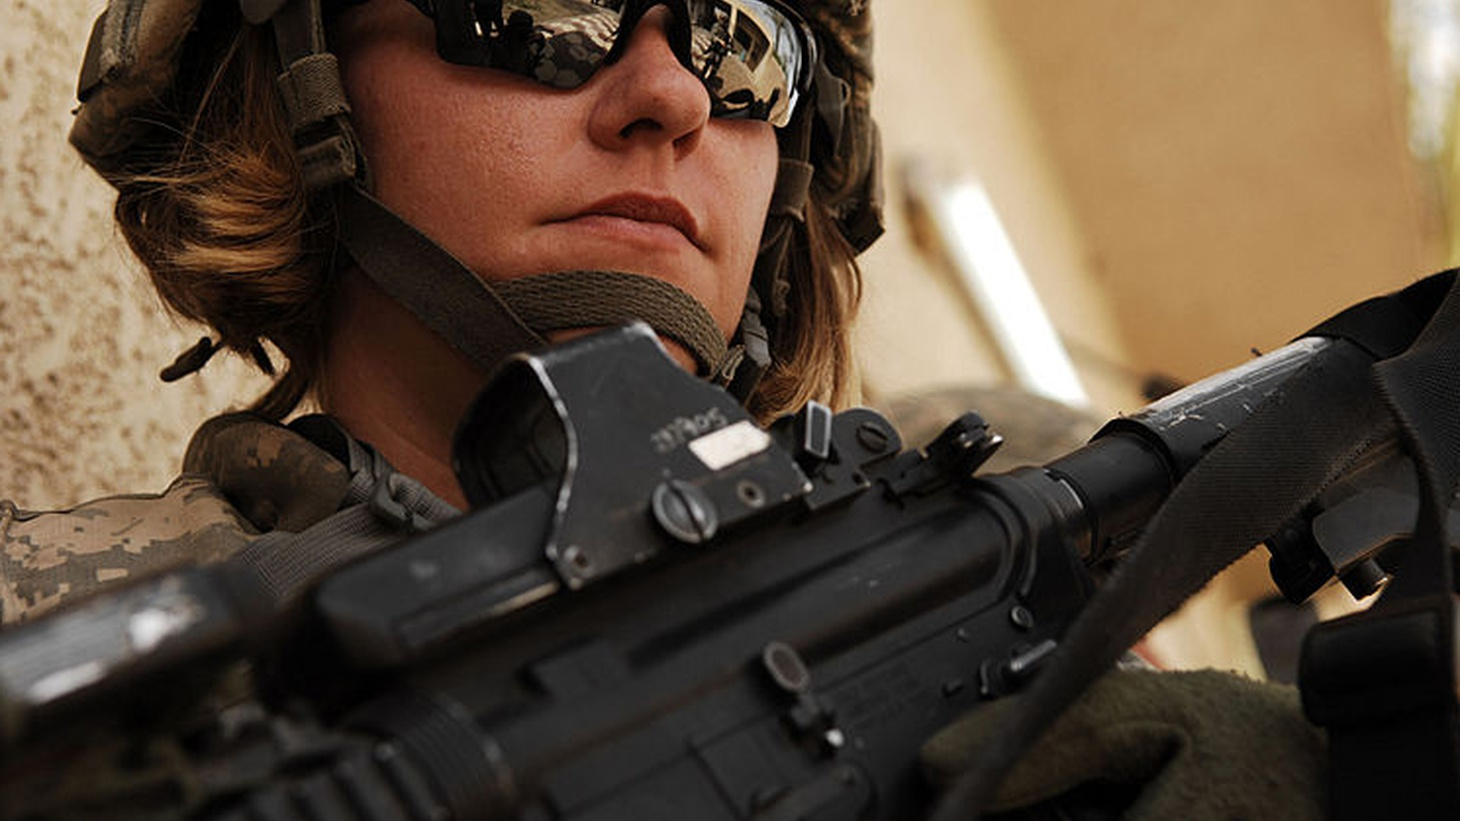 The US Defense Department may be making history by opening all combat roles to women, but advocates say that's just recognizing what's been true for a long time.